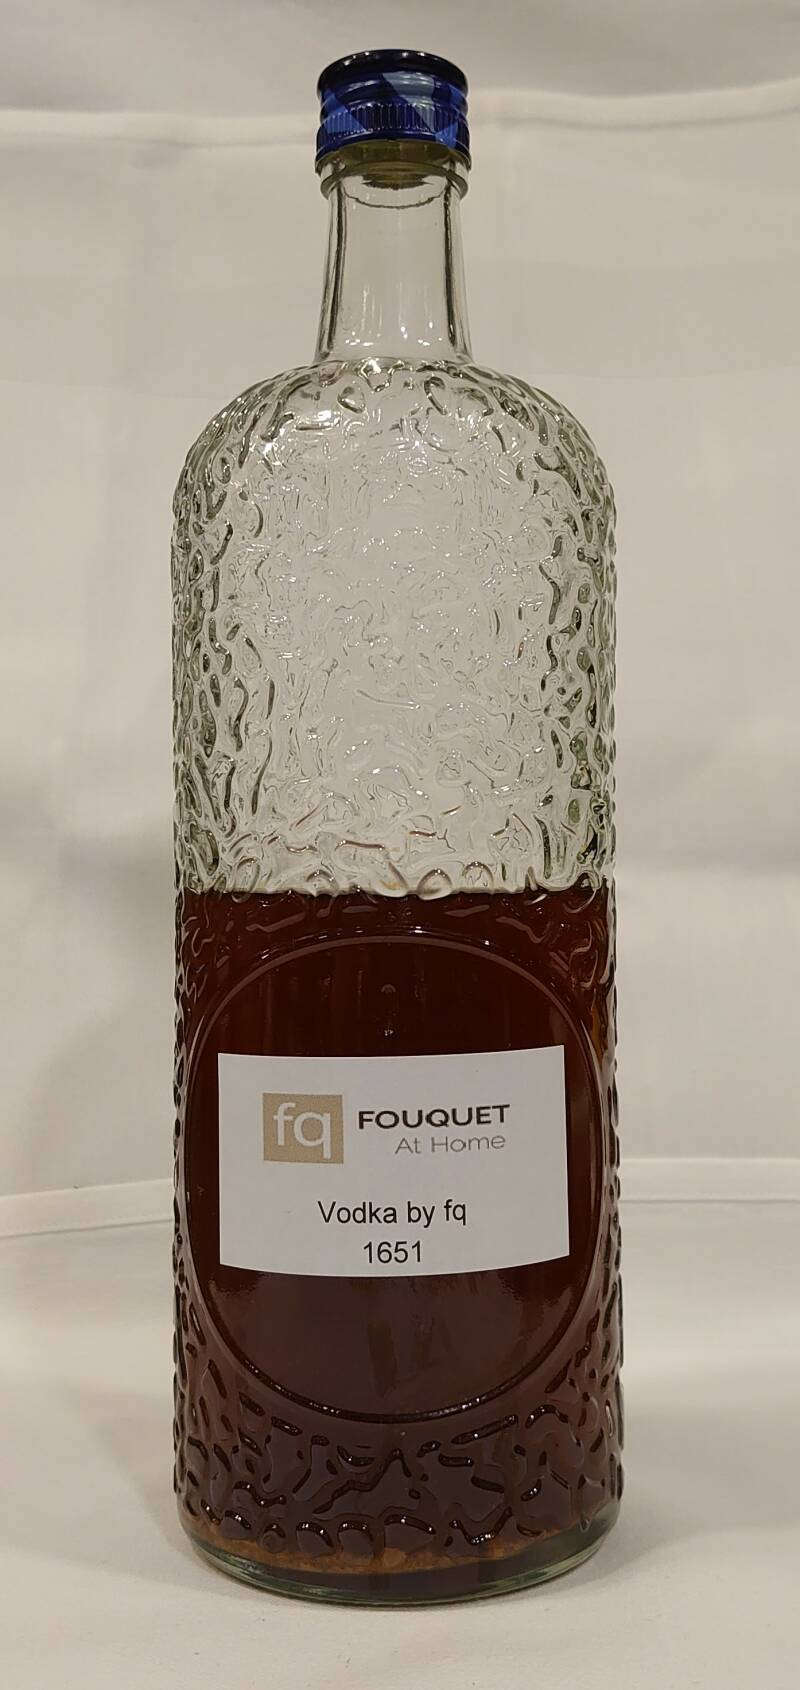 Vodka 1651 by fq